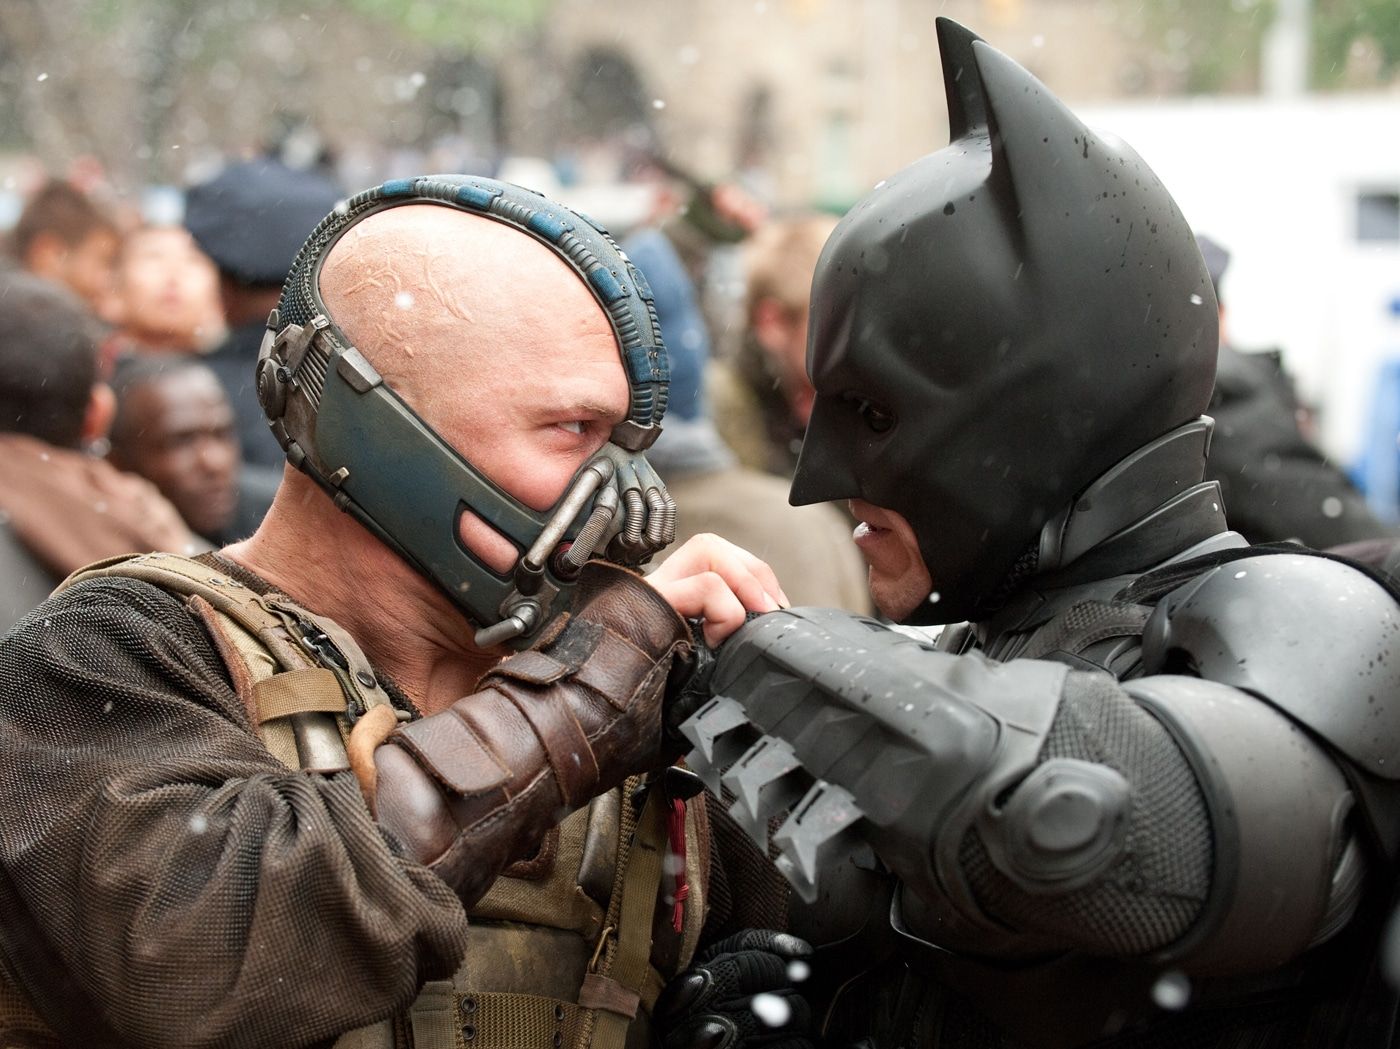 Comic Books vs. Films: Should Fans React To The Inaccuracy?